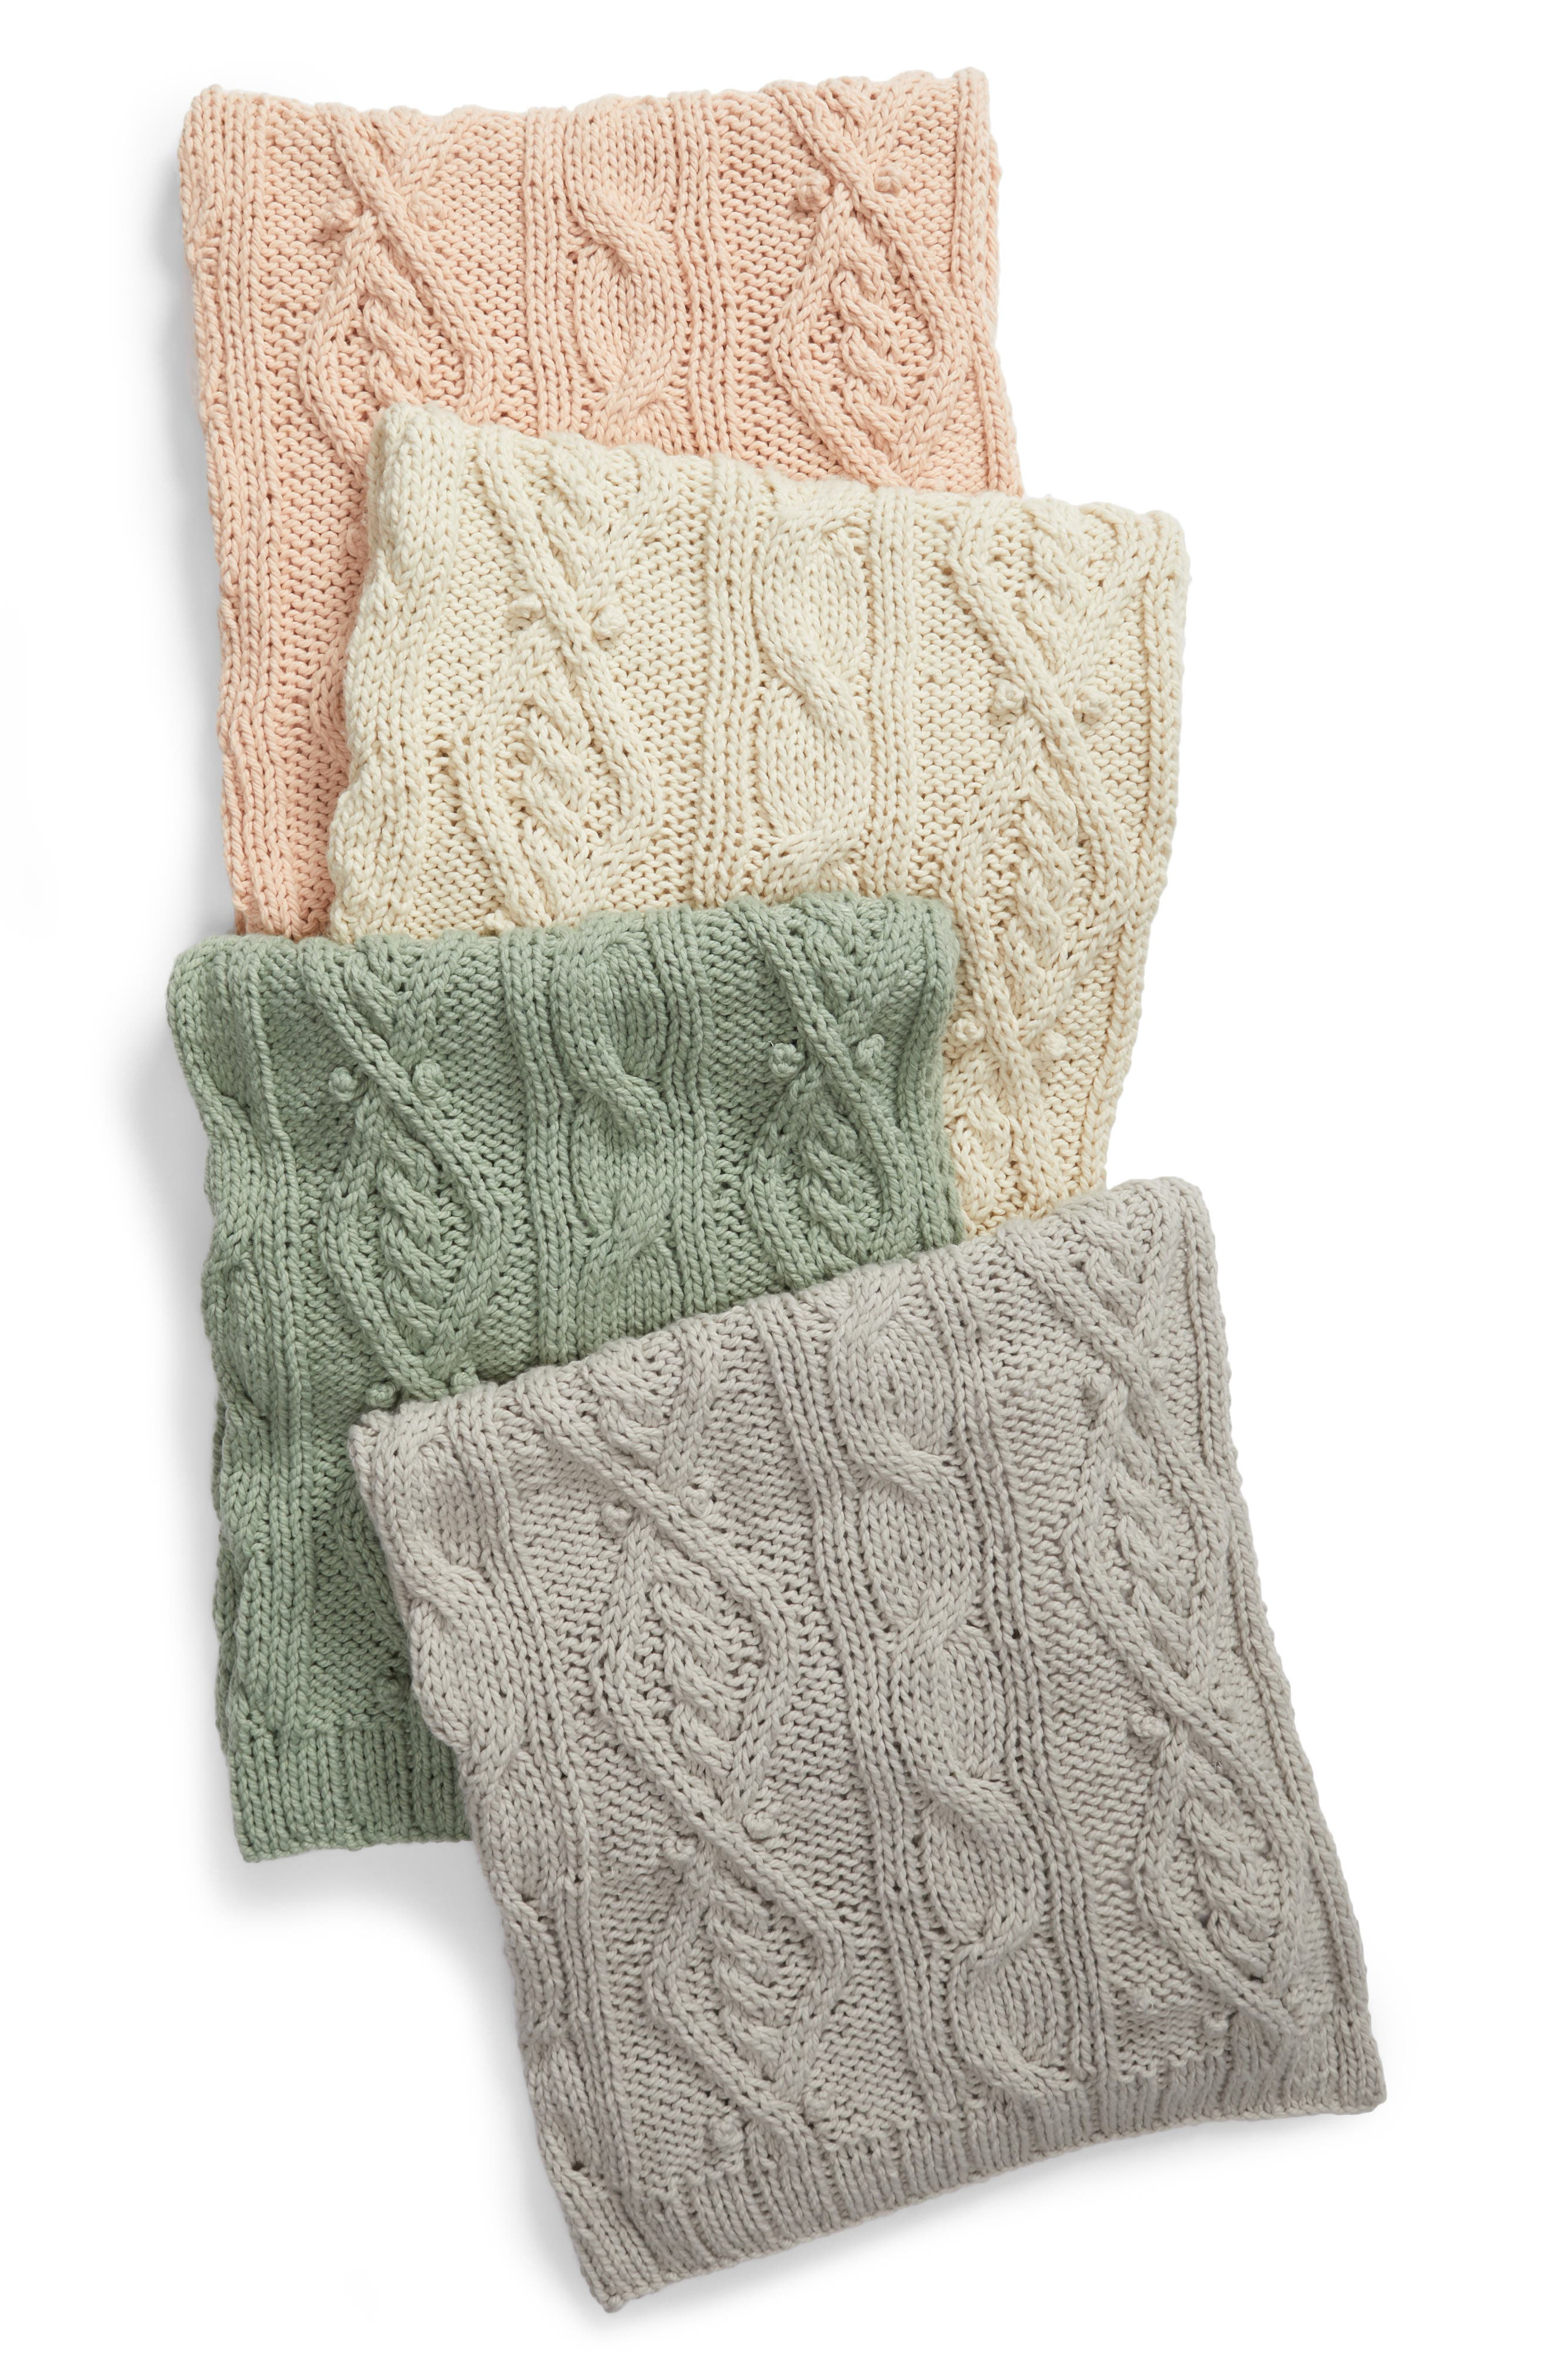 Chunky Cable Knit Throw Blanket,                             Alternate thumbnail 3, color,                             PINK HERO